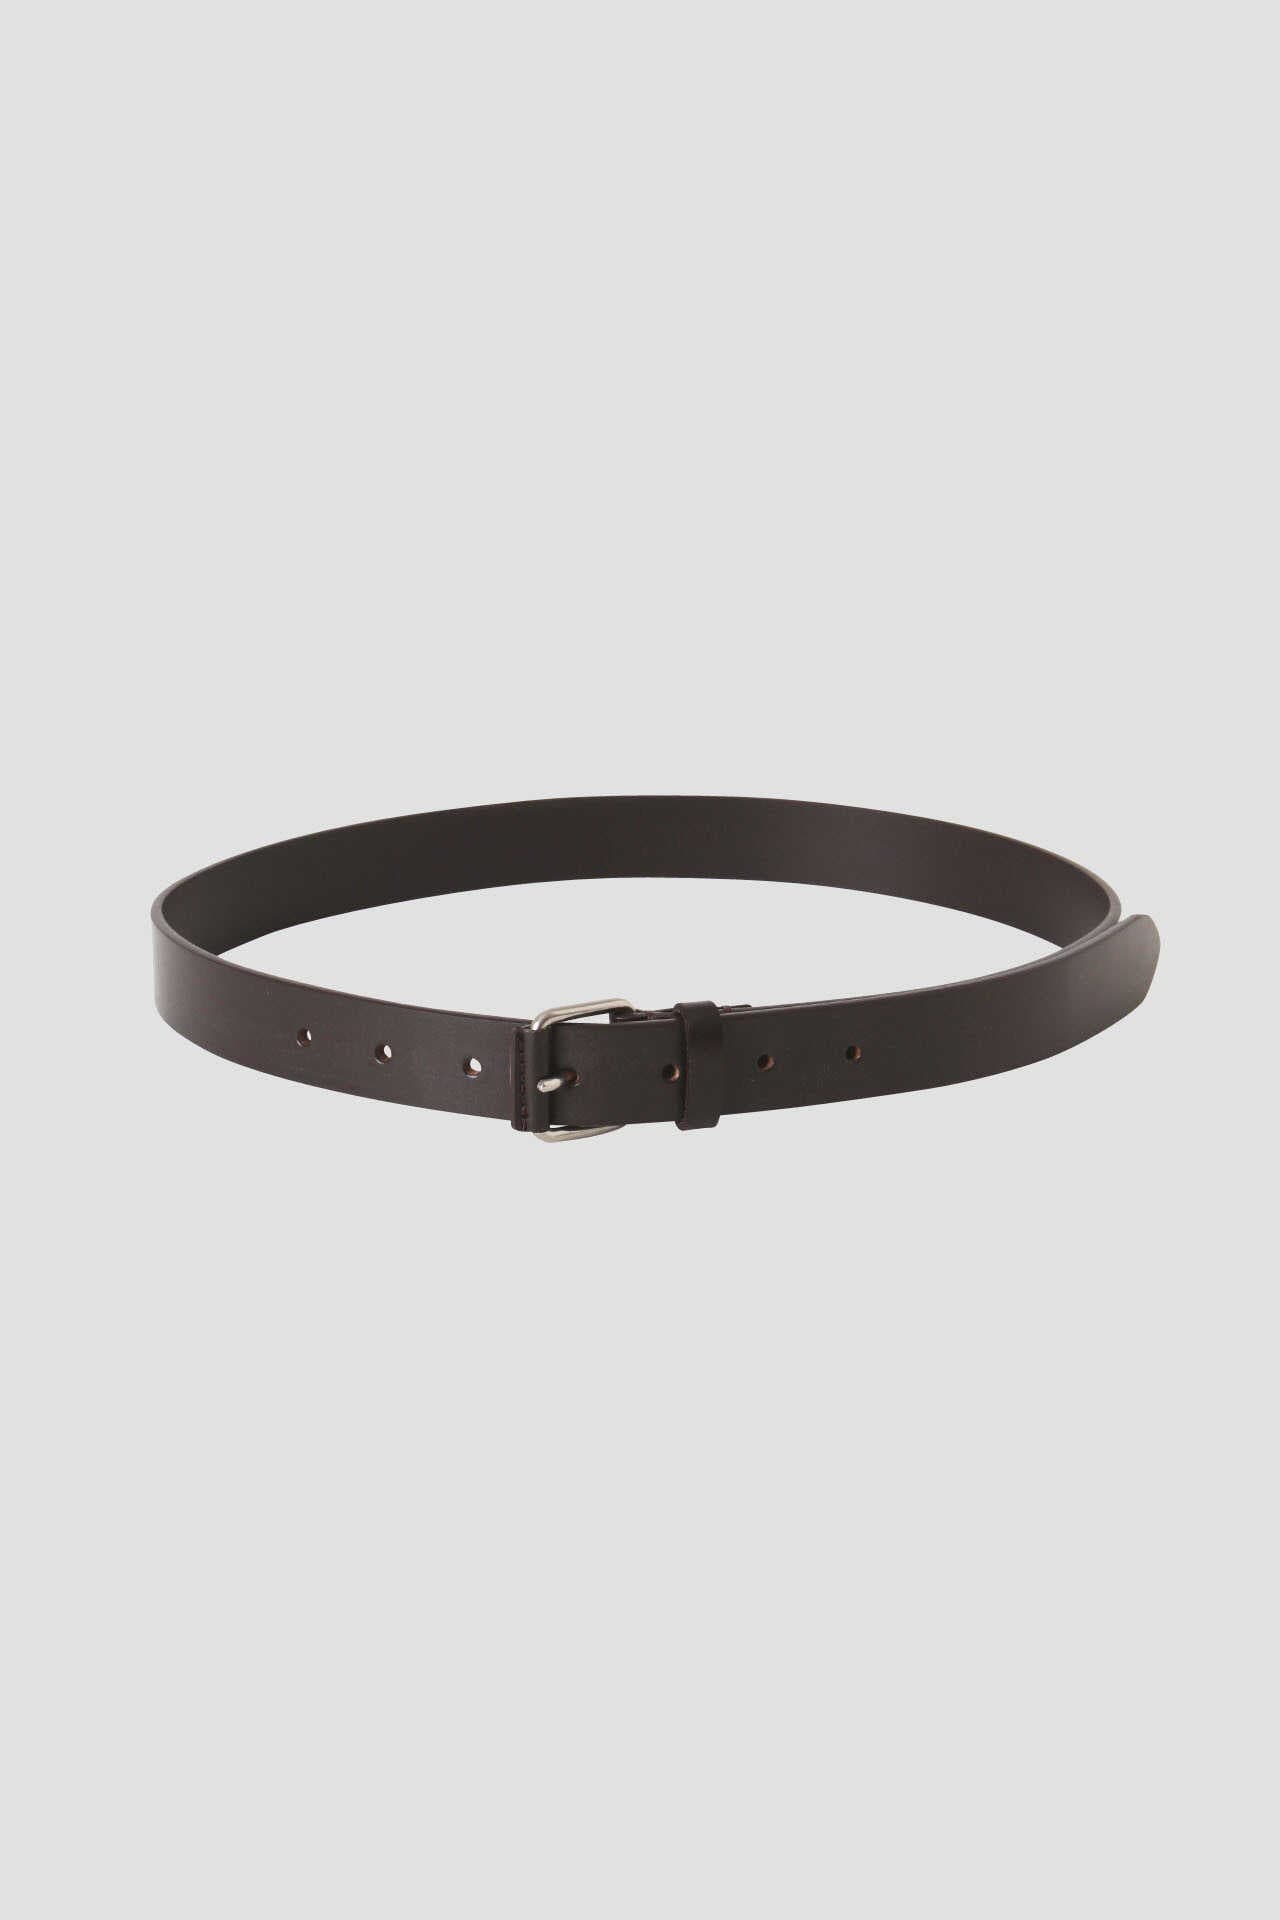 BRIDLE LEATHER6